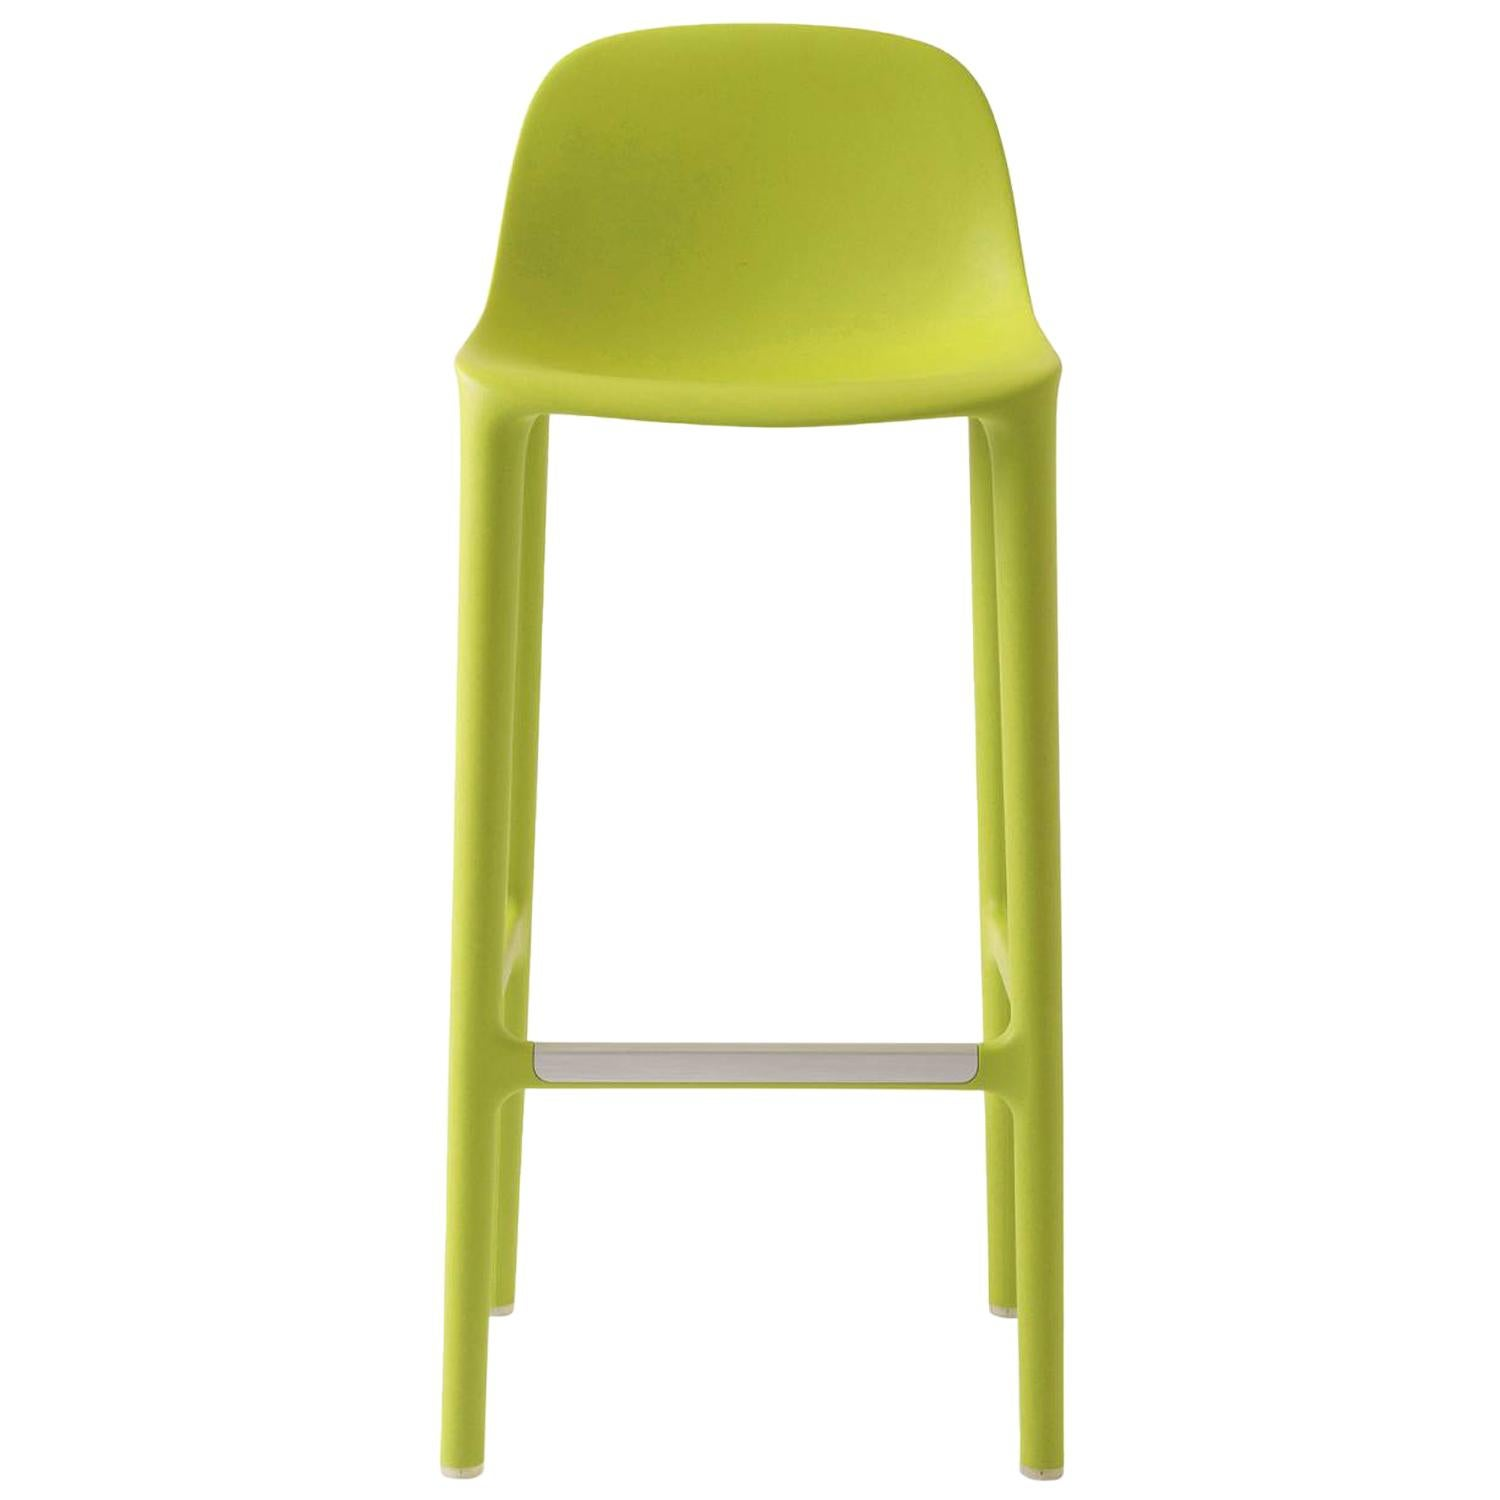 Emeco Broom Barstool in Green by Philippe Starck